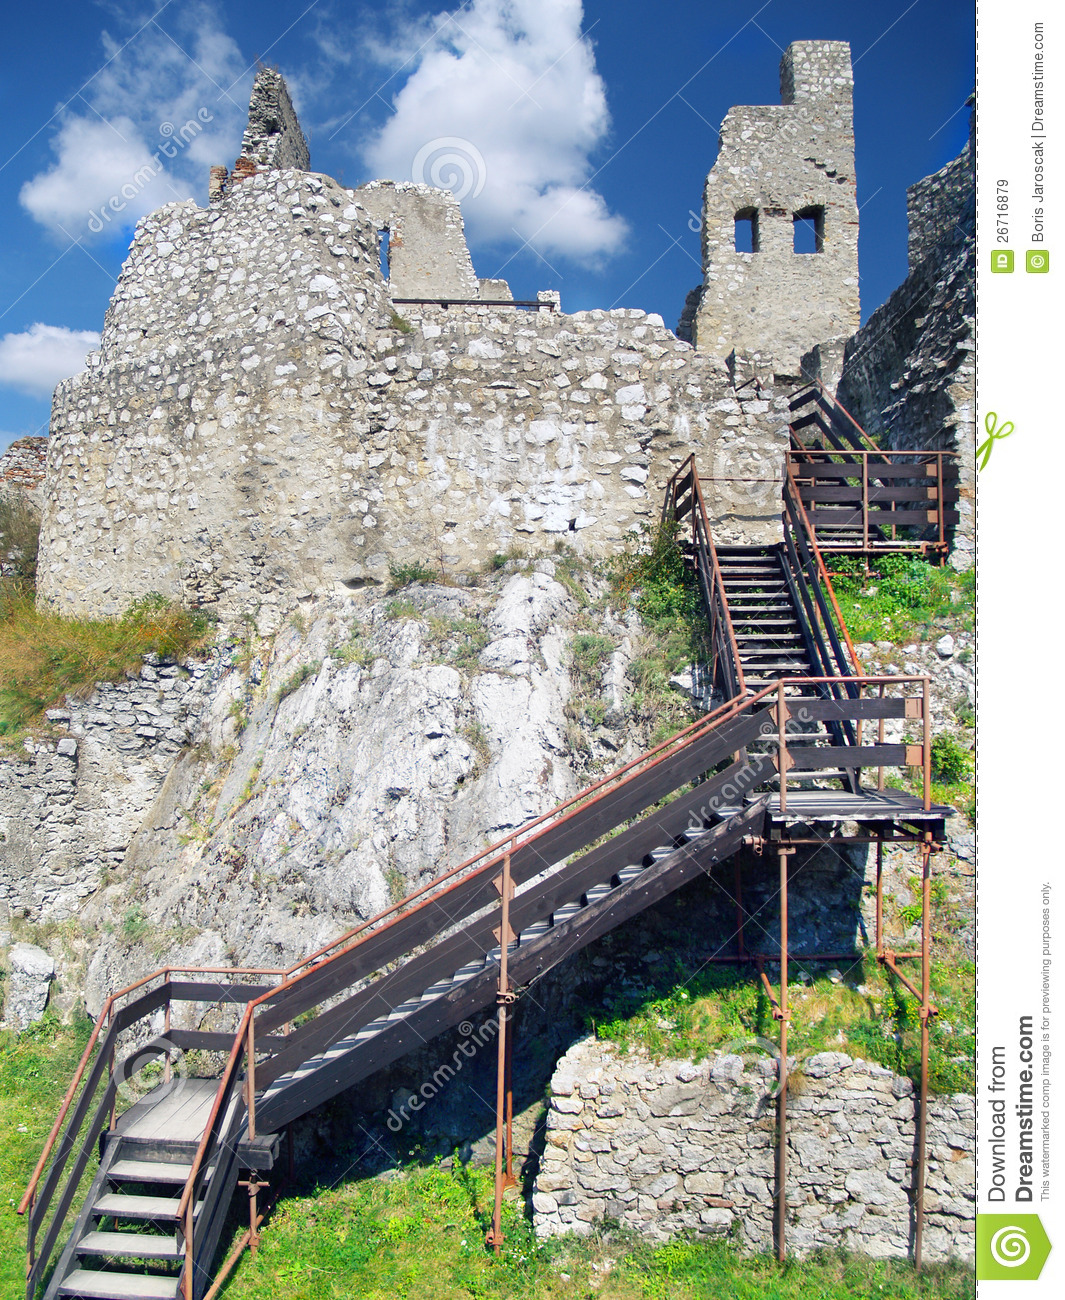 The Castle of Beckov - Interior with stairs